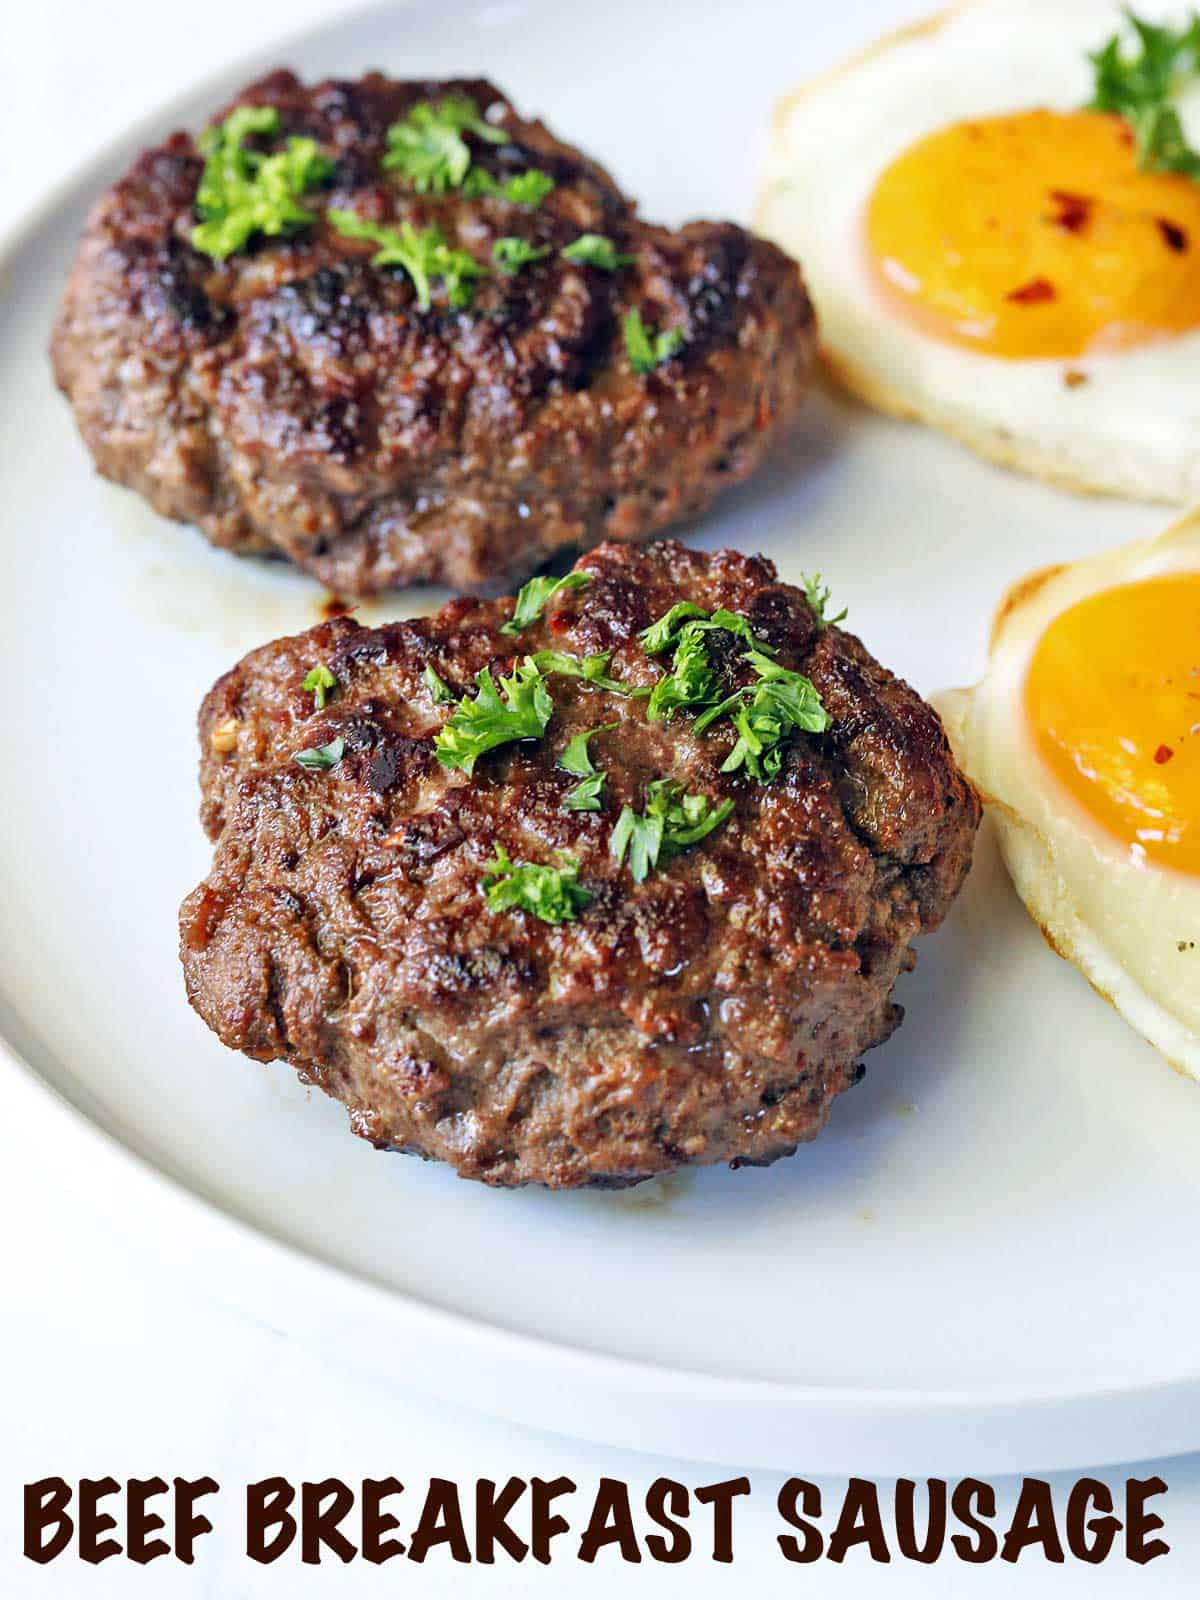 Two beef sausage patties served with fried eggs.